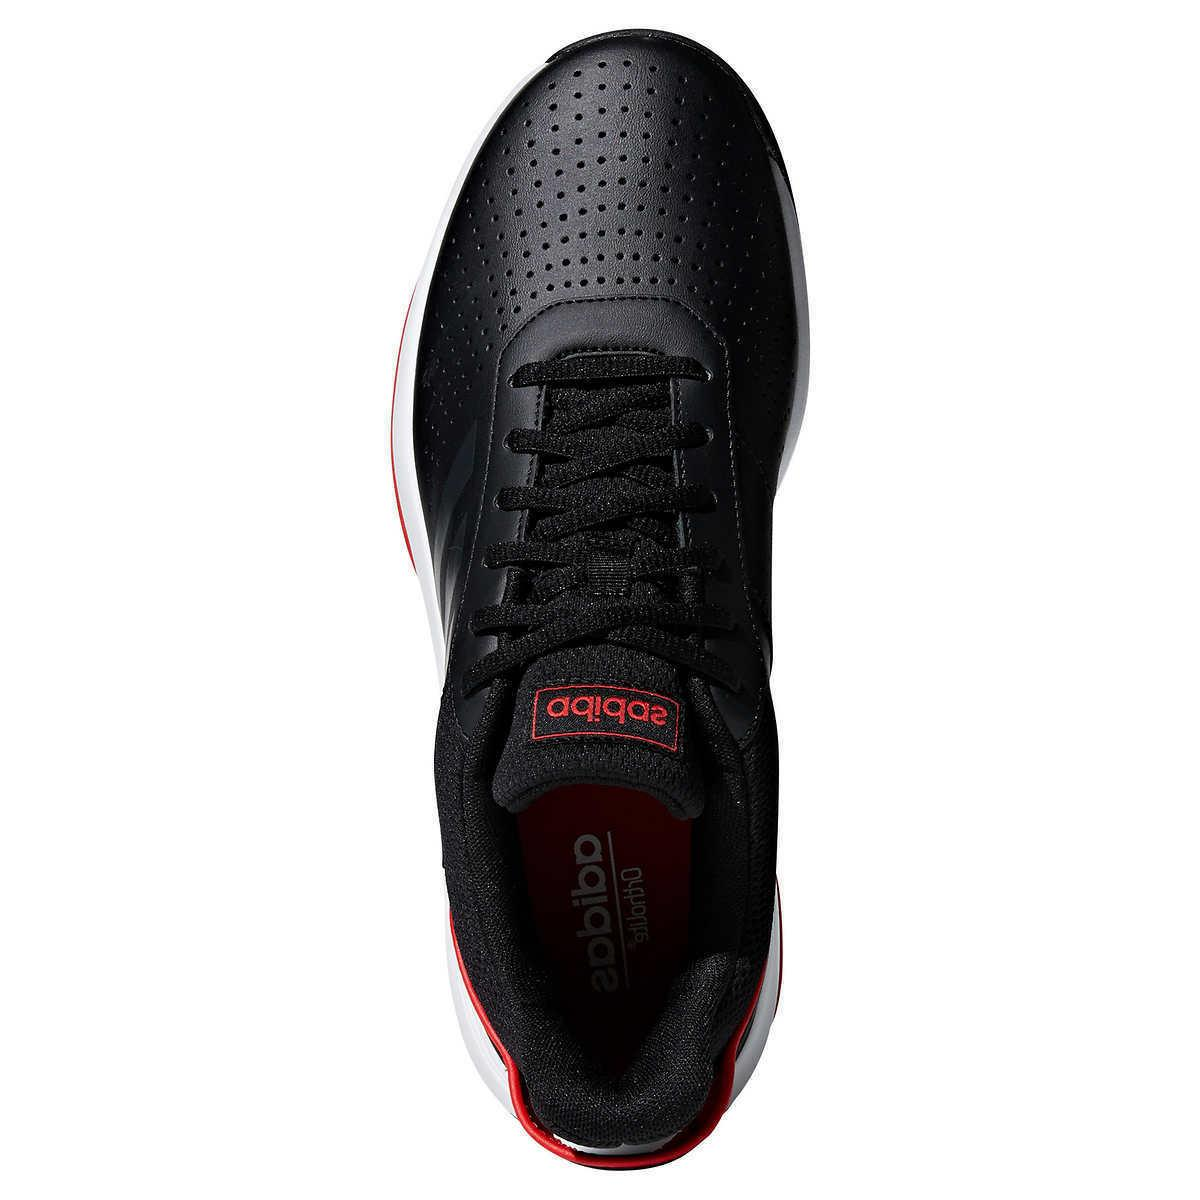 Adidas Men's Black Tennis